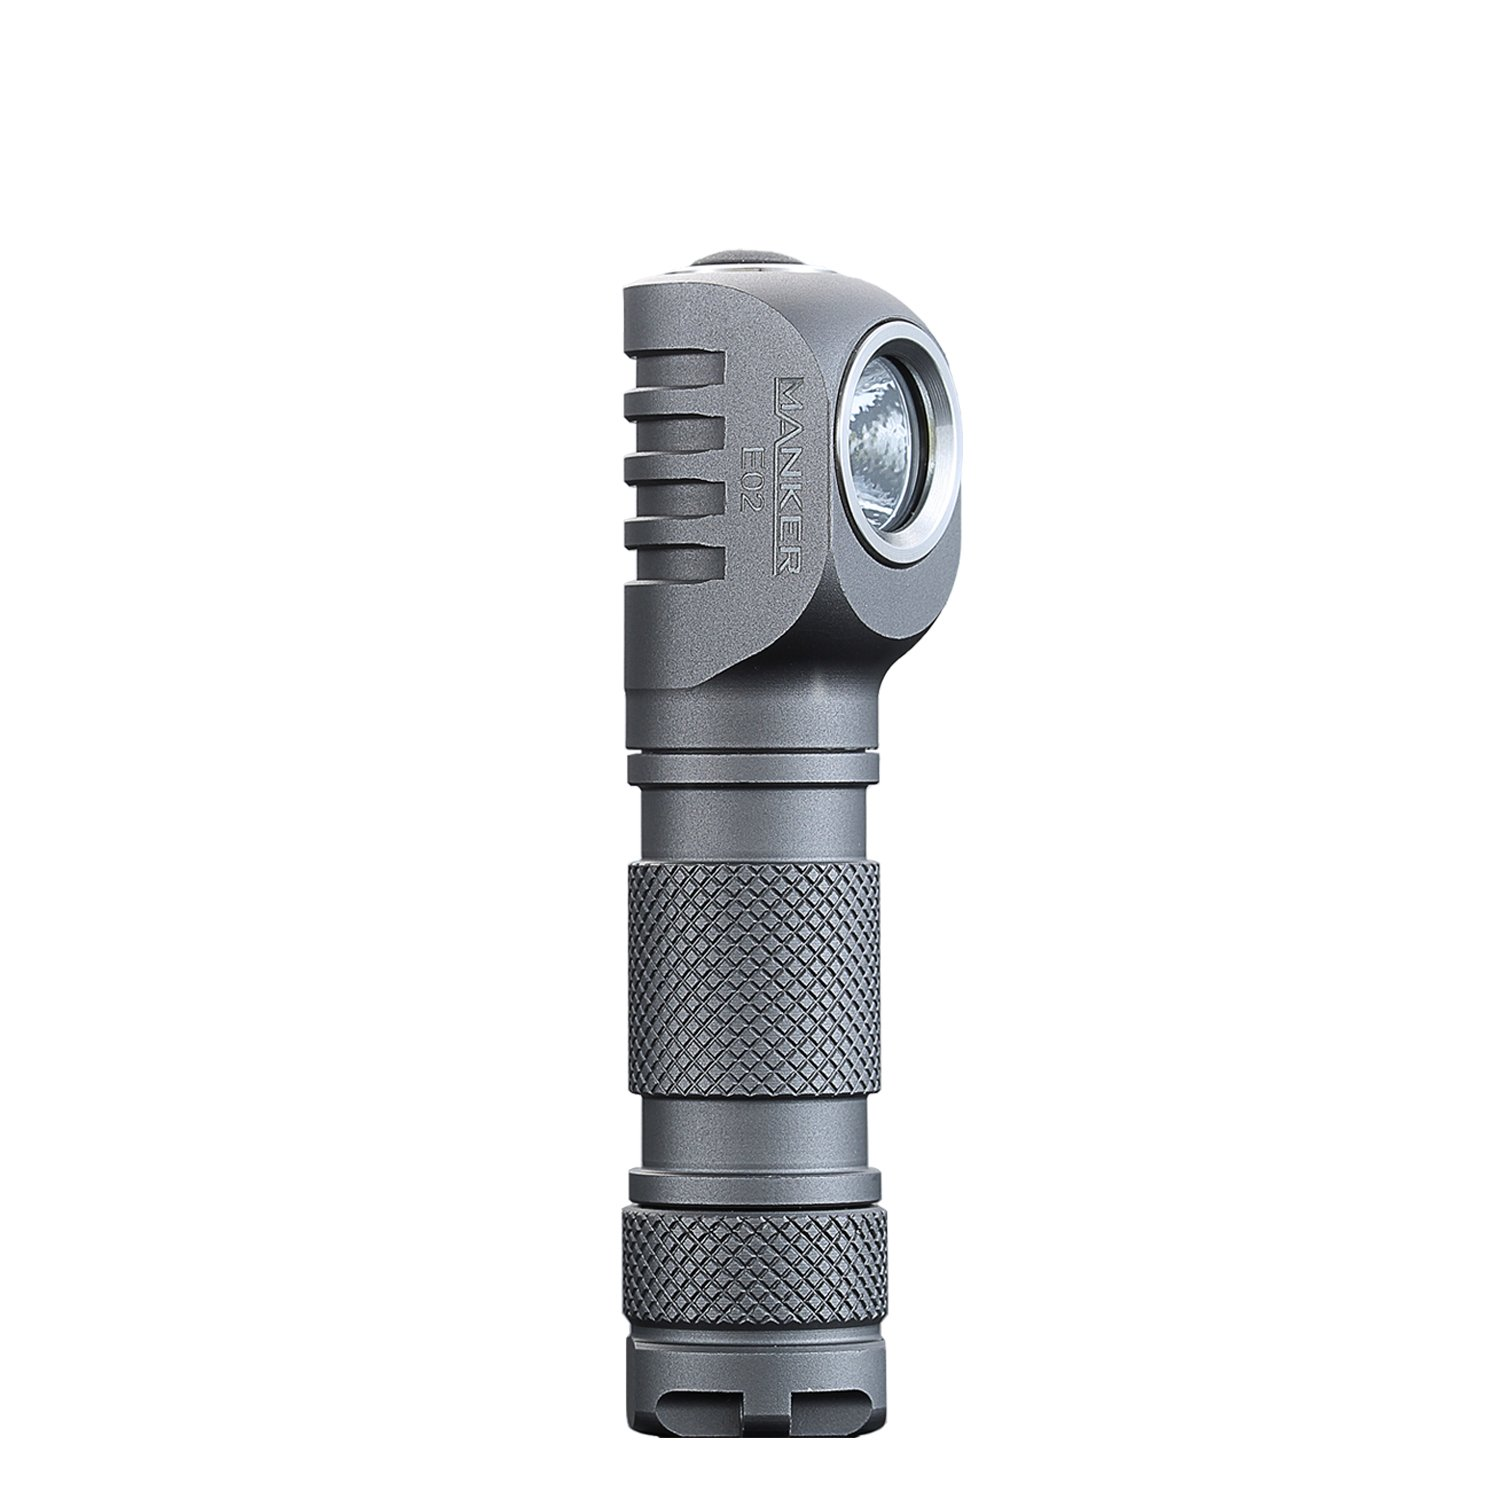 Manker E02 Best Aaa Flashlight 220 Lumen Right Angle Light Keychain In Fig 71b Is Also A Constantcurrent Circuit With The Base Fixed At Mini Edc Led Cree Xpg3 Reversible Clip Magnet Tail Grey Color